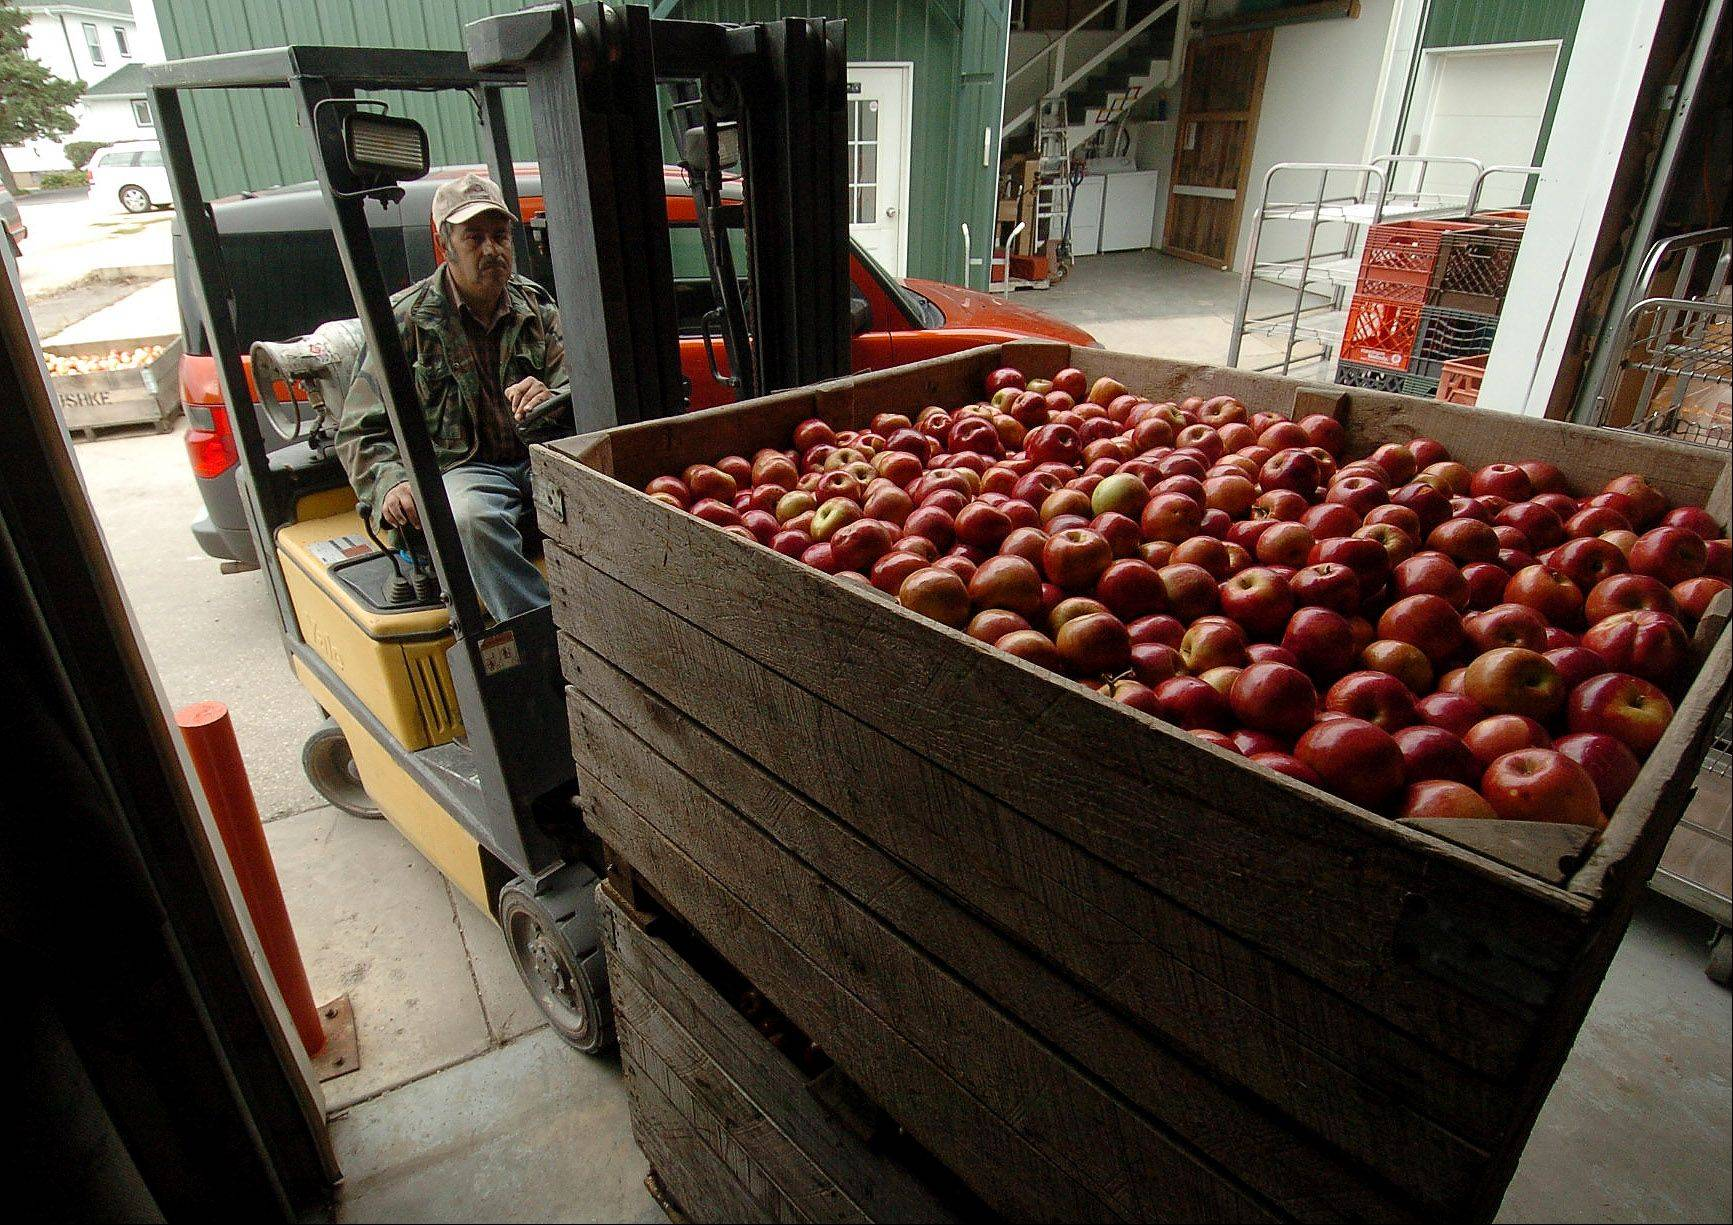 Manuel Rivera brings in a bin of apples to be processed into apple cider.